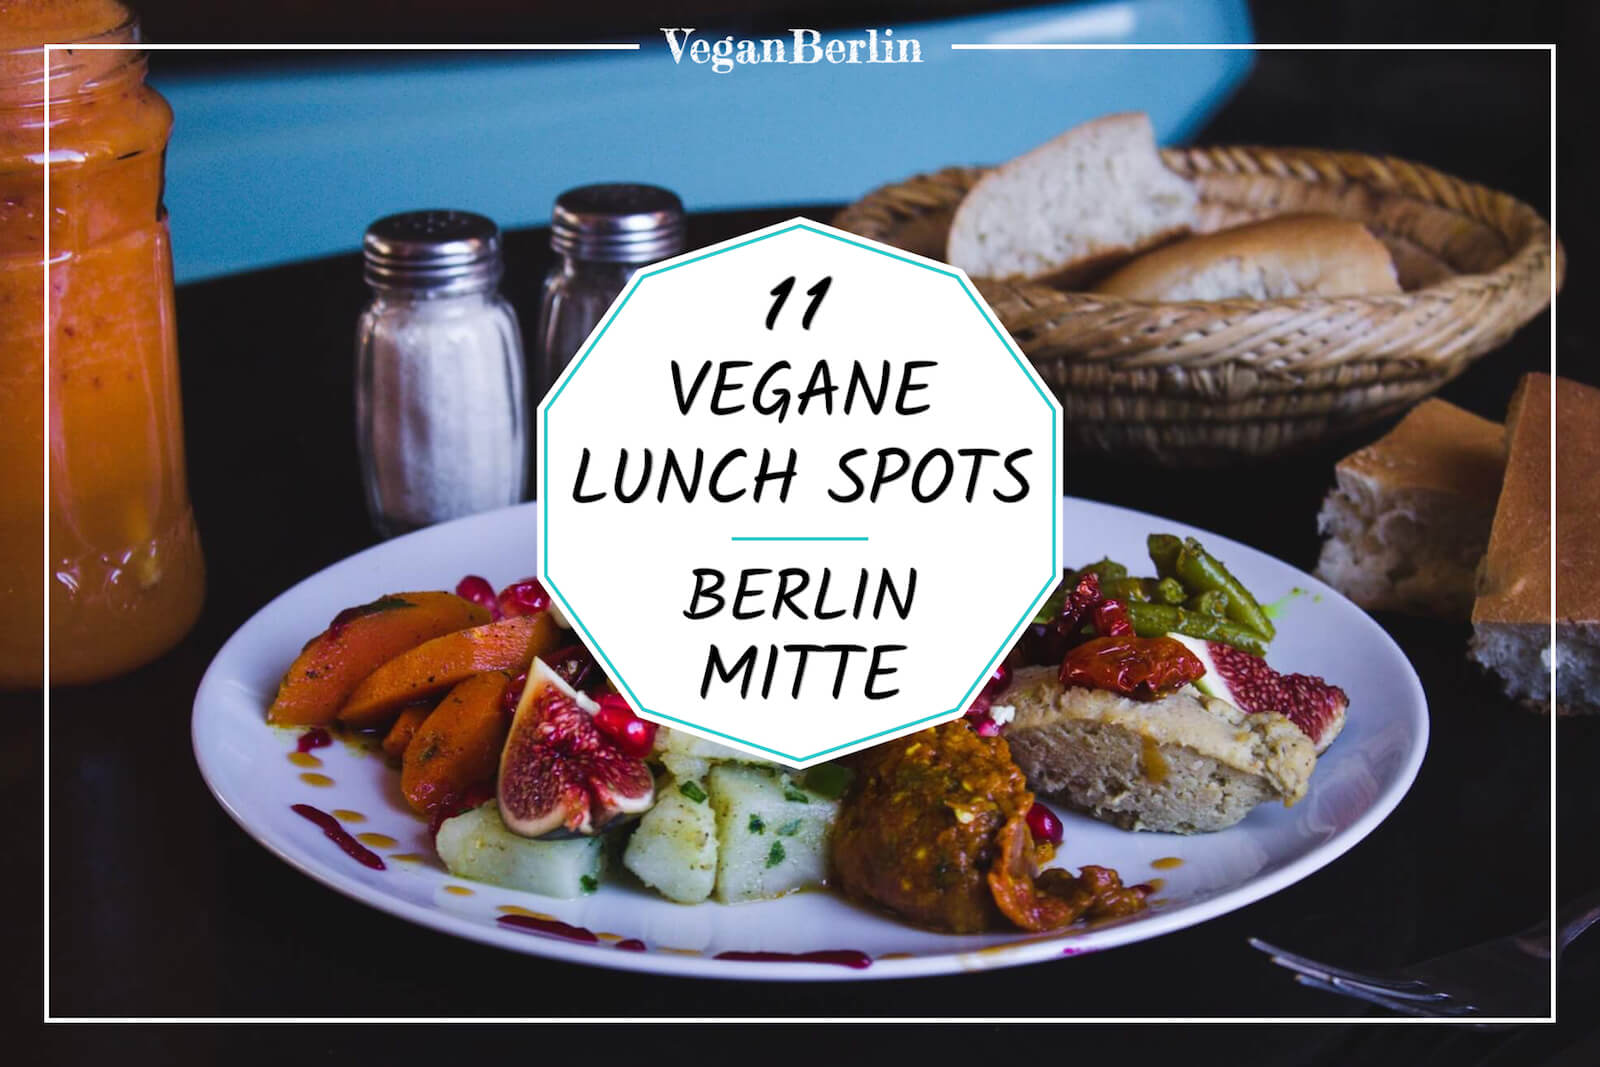 Vegane Lunch Restaurants in Berlin Mitte